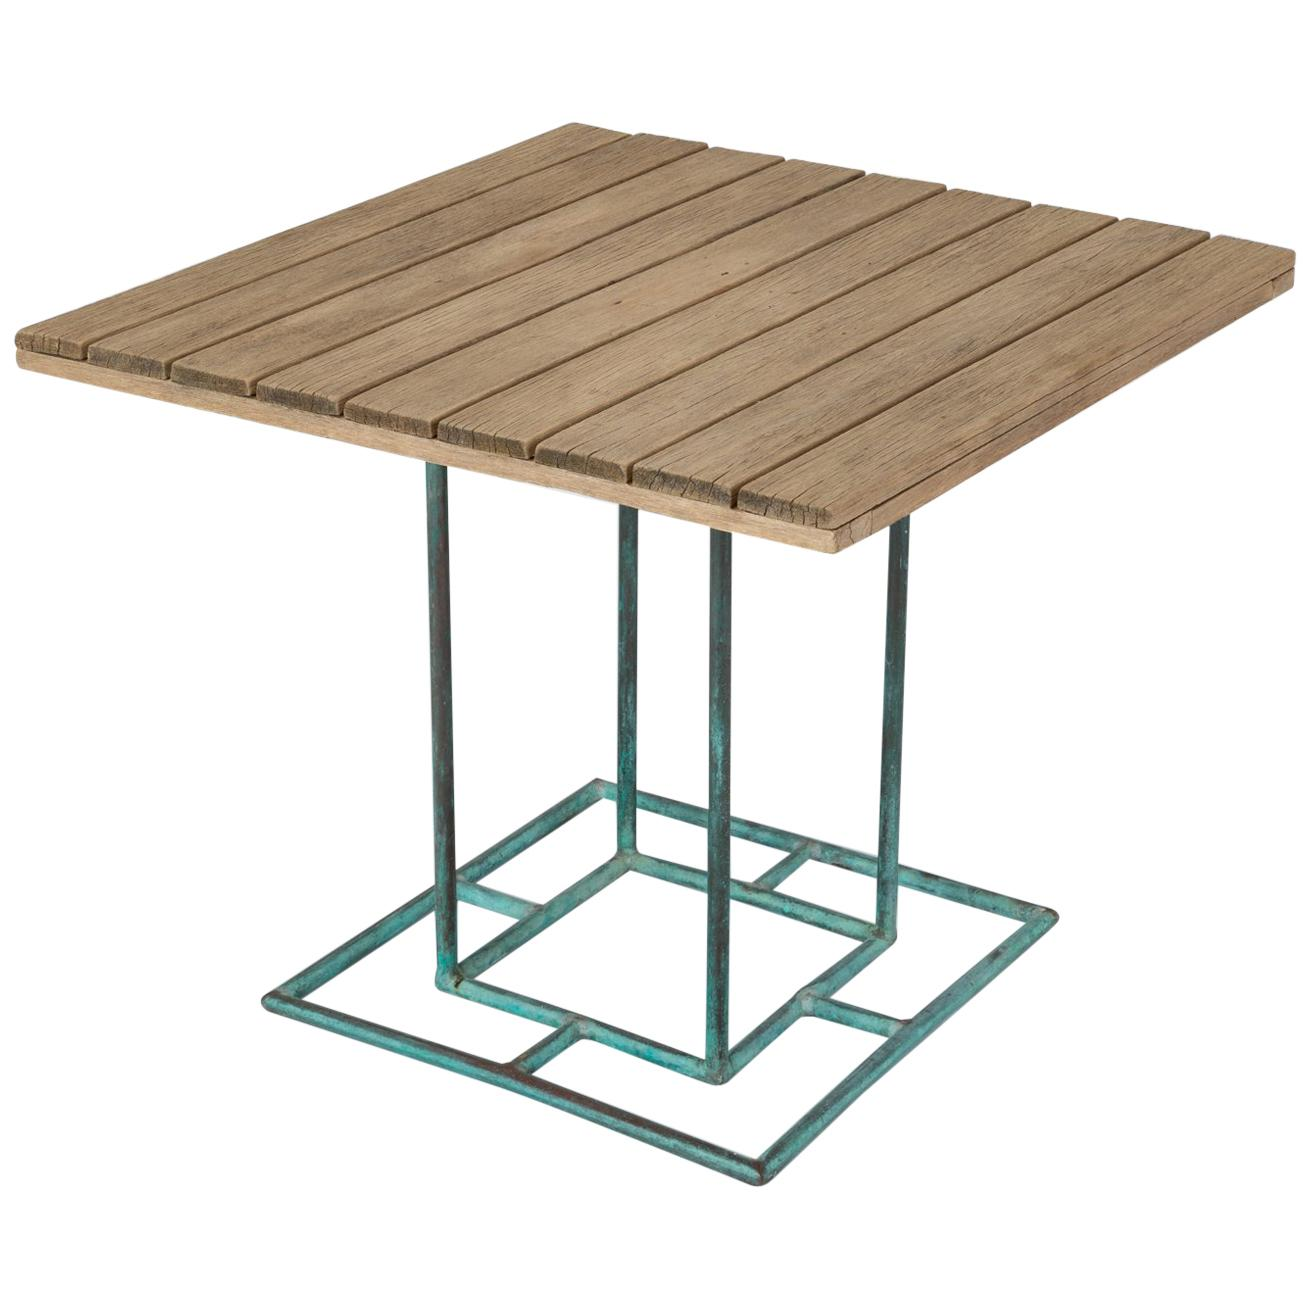 Square Patio Dining Table With Wooden Top By Walter Lamb For Brown Jordan  For Sale